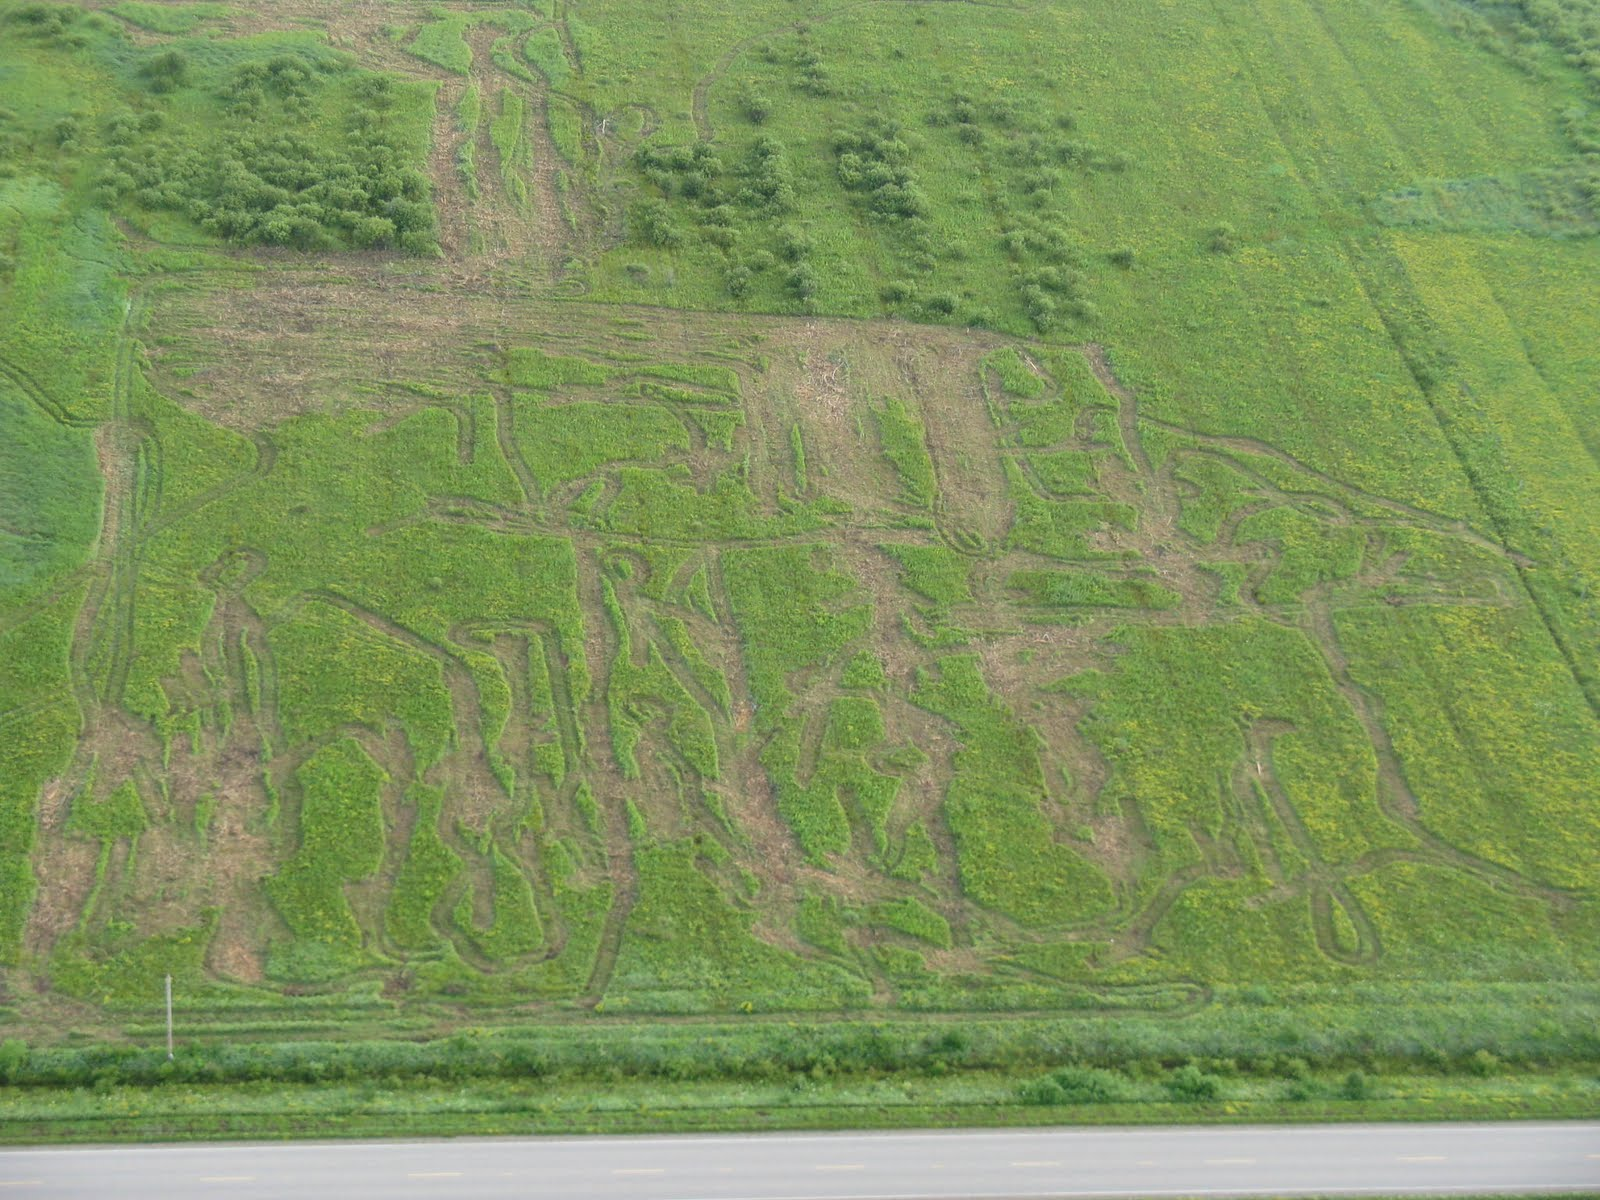 Photo: Wednesday morning flight finds ATV paths in field